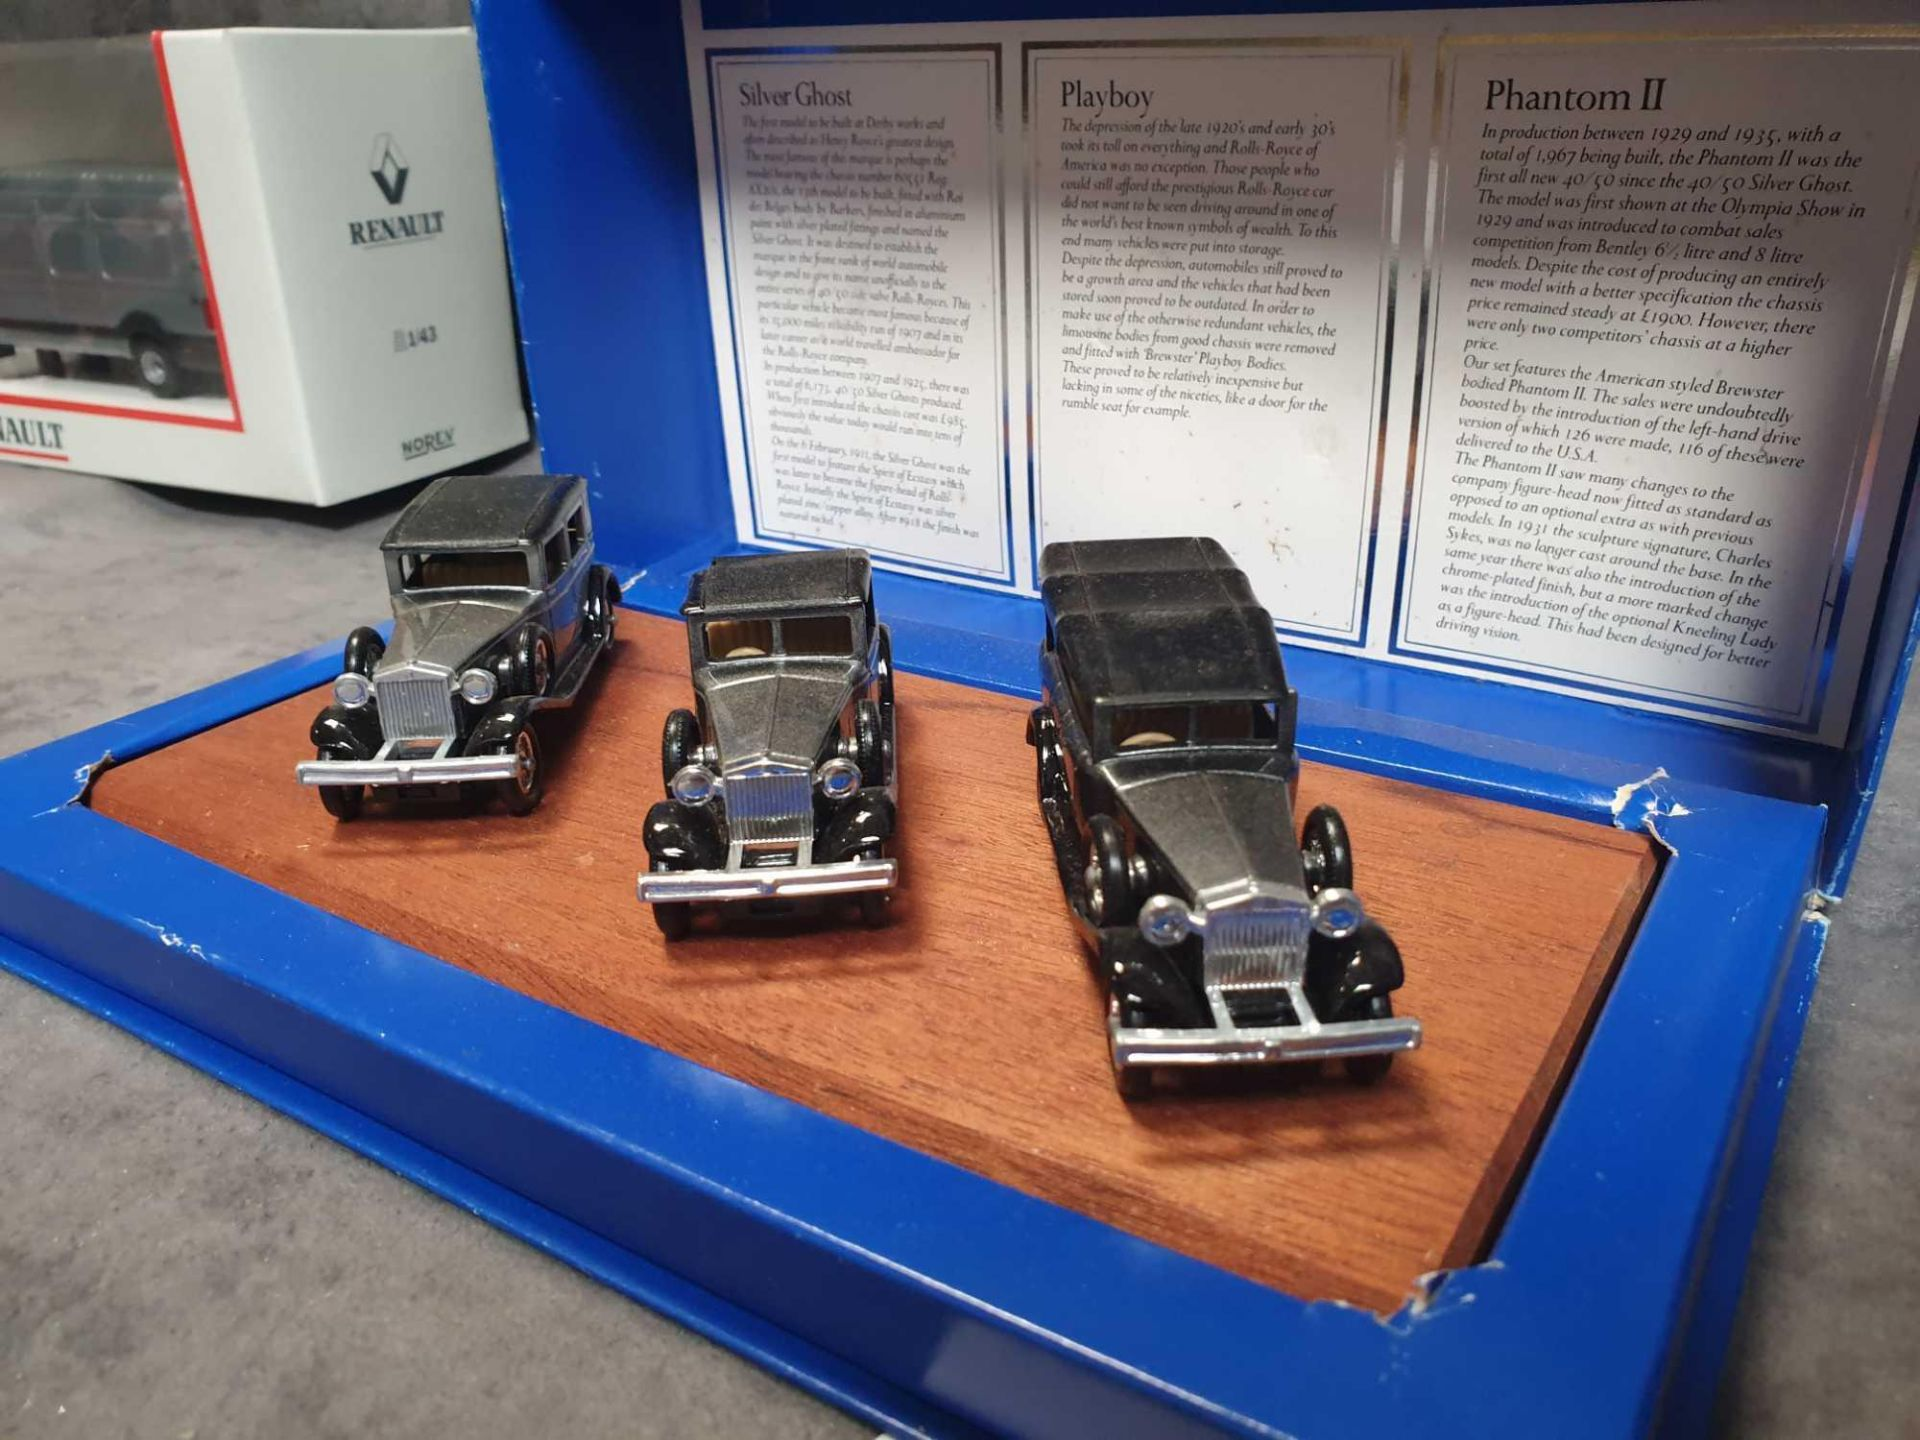 Lledo Vintage Rolls Royce Collection 3 Cars On Wooden Display Plinth Mint Model - Image 3 of 4